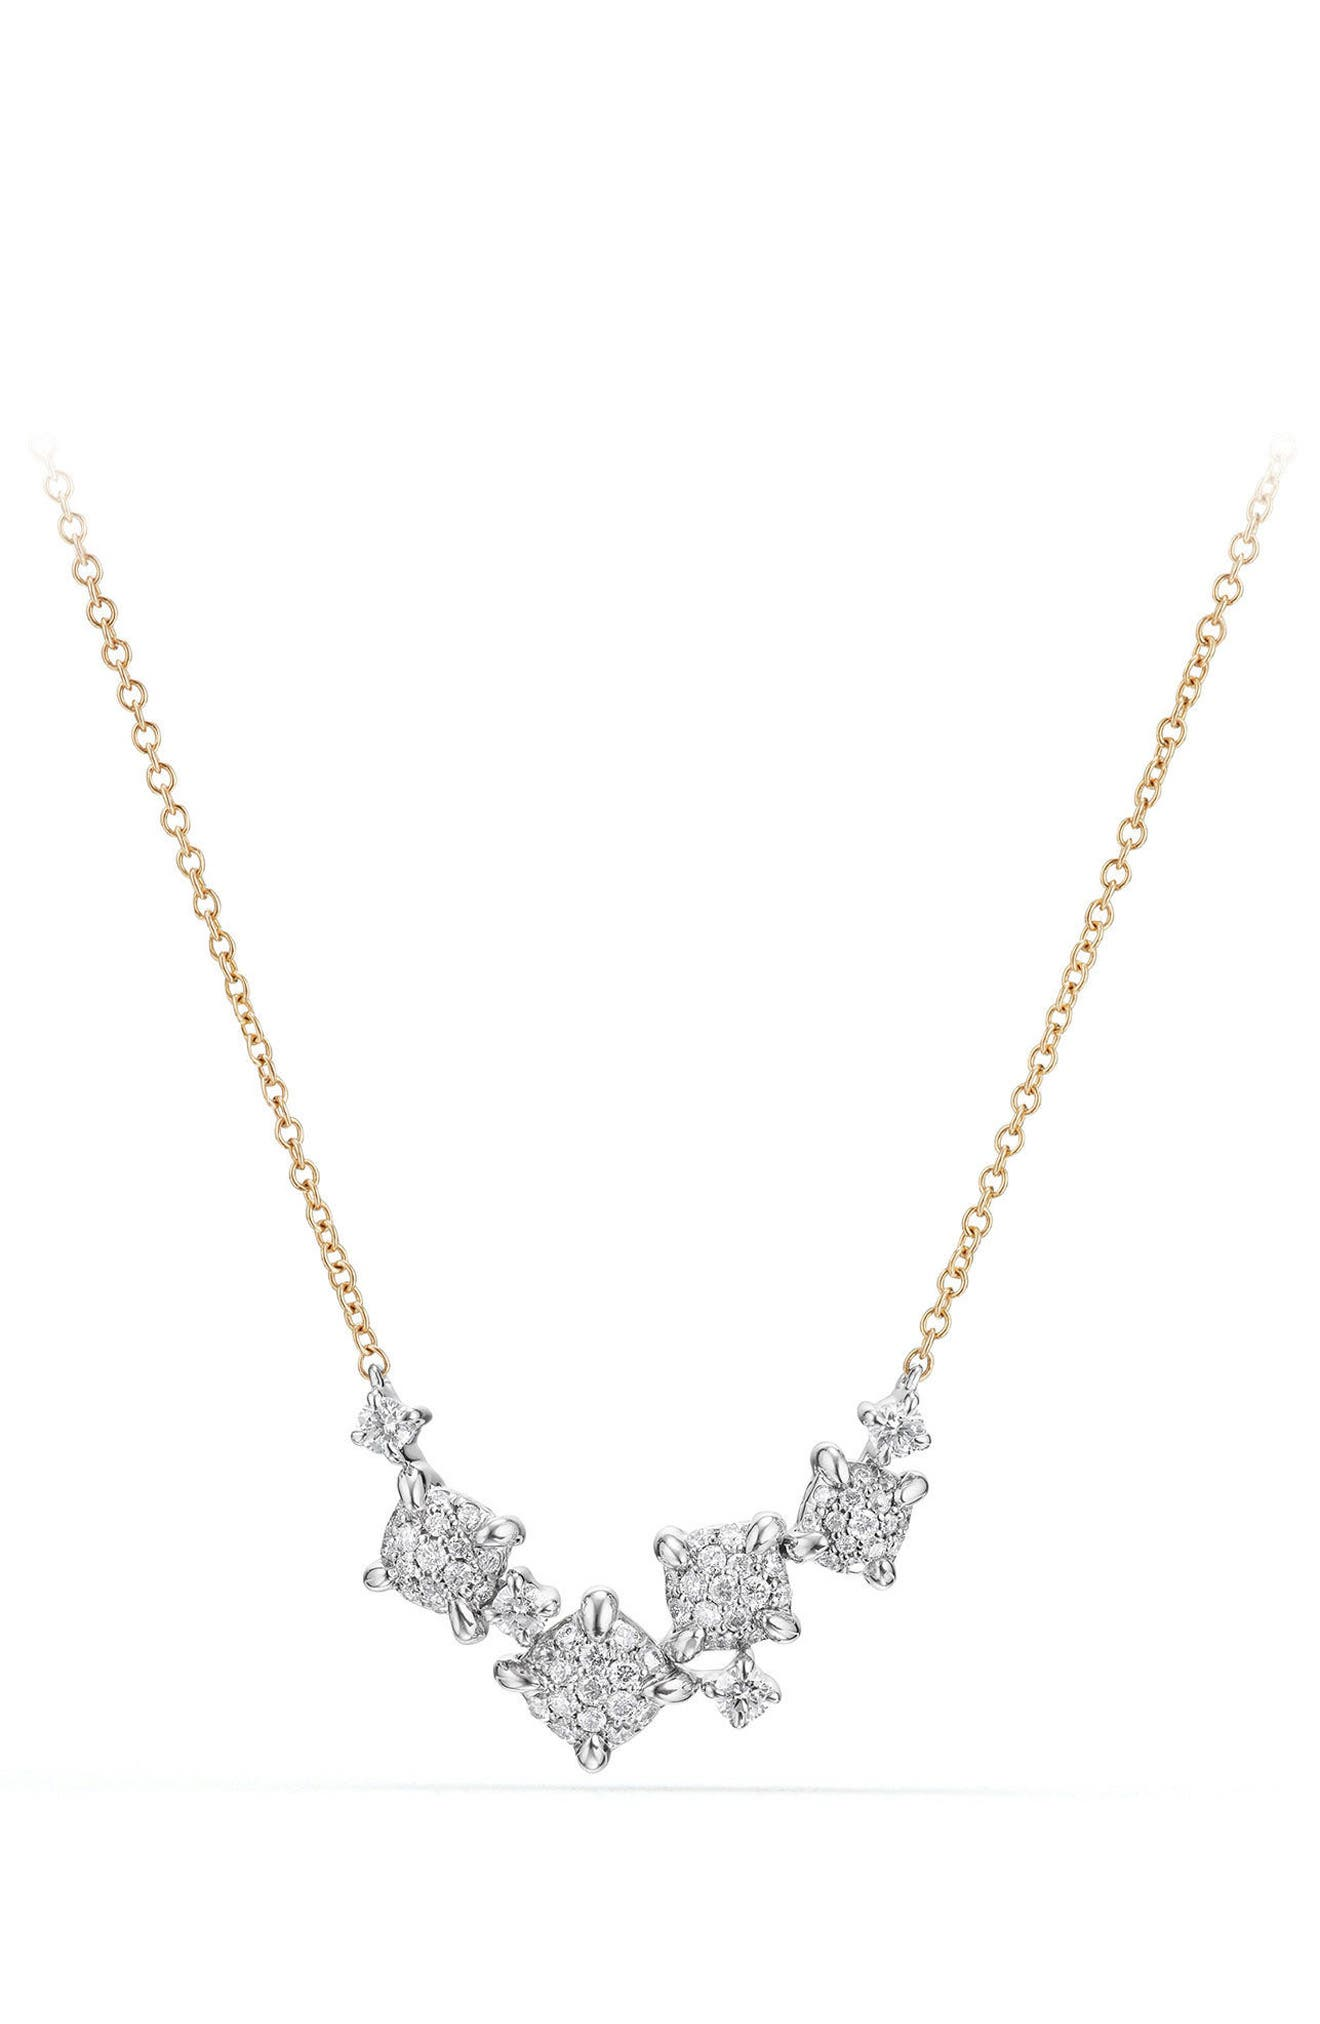 Precious Châtelaine Necklace with Diamonds in 18K Gold,                         Main,                         color, YELLOW GOLD/ DIAMOND